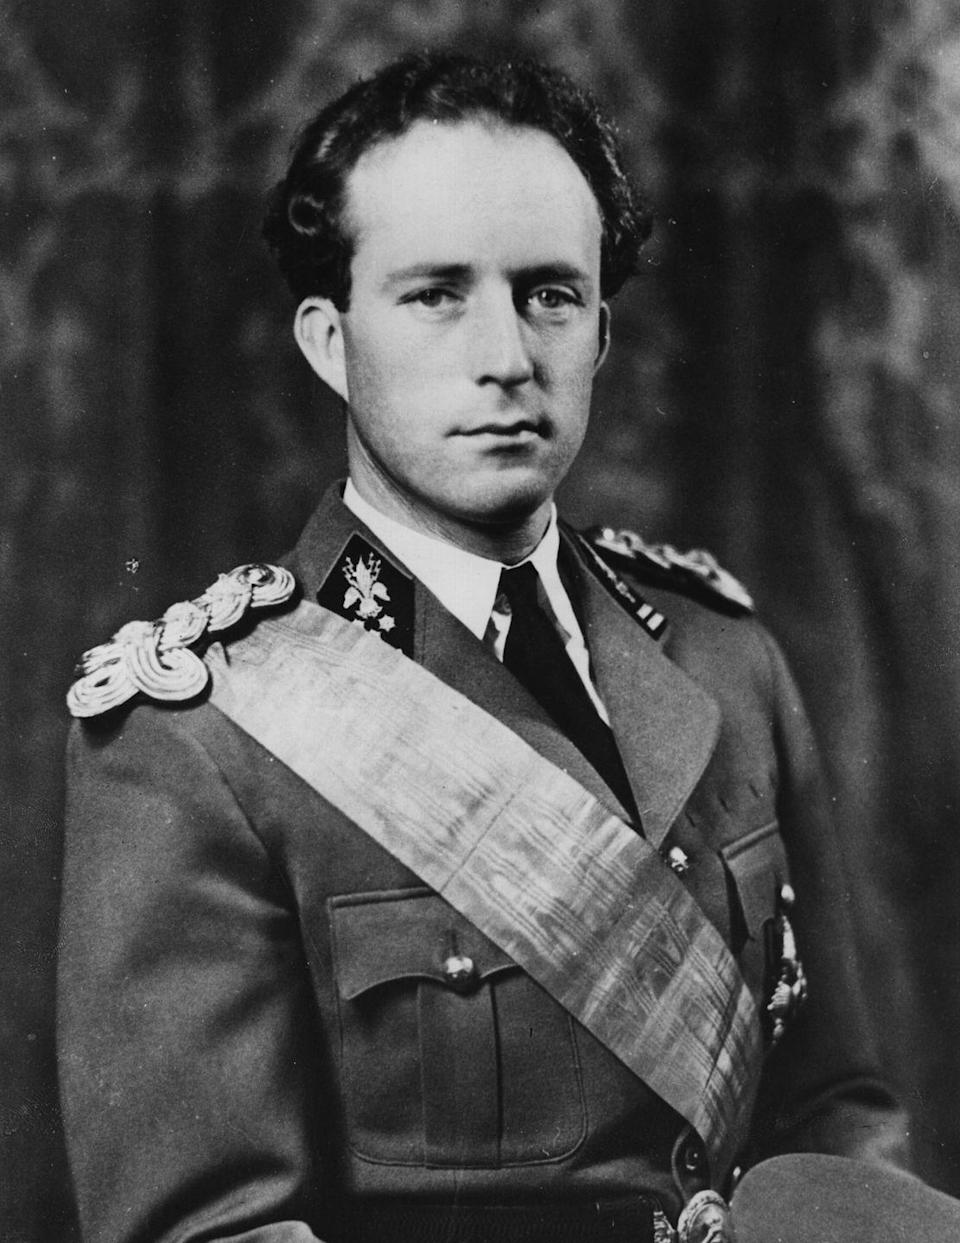 "<p>When the book <em>Dramas in the Belgian Royal House</em> came out, it suggested that King Leopold III, who's the father of Albert II, had an illegitimate daughter. </p><p>As the story goes, Leopold got in a car accident in 1935 and lost his wife because of it. After the incident, he then started a relationship with Austrian skating legend Liselotte Landbeck, which brought their daughter Ingeborg Verdun into the world. </p><p>The Royal Palace in Brussels <a href=""https://www.vrt.be/vrtnws/en/2011/02/22/_king_albert_hasahalfsisterandahalfbrother-1-968447/"" rel=""nofollow noopener"" target=""_blank"" data-ylk=""slk:has yet to comment."" class=""link rapid-noclick-resp"">has yet to comment.</a> </p>"